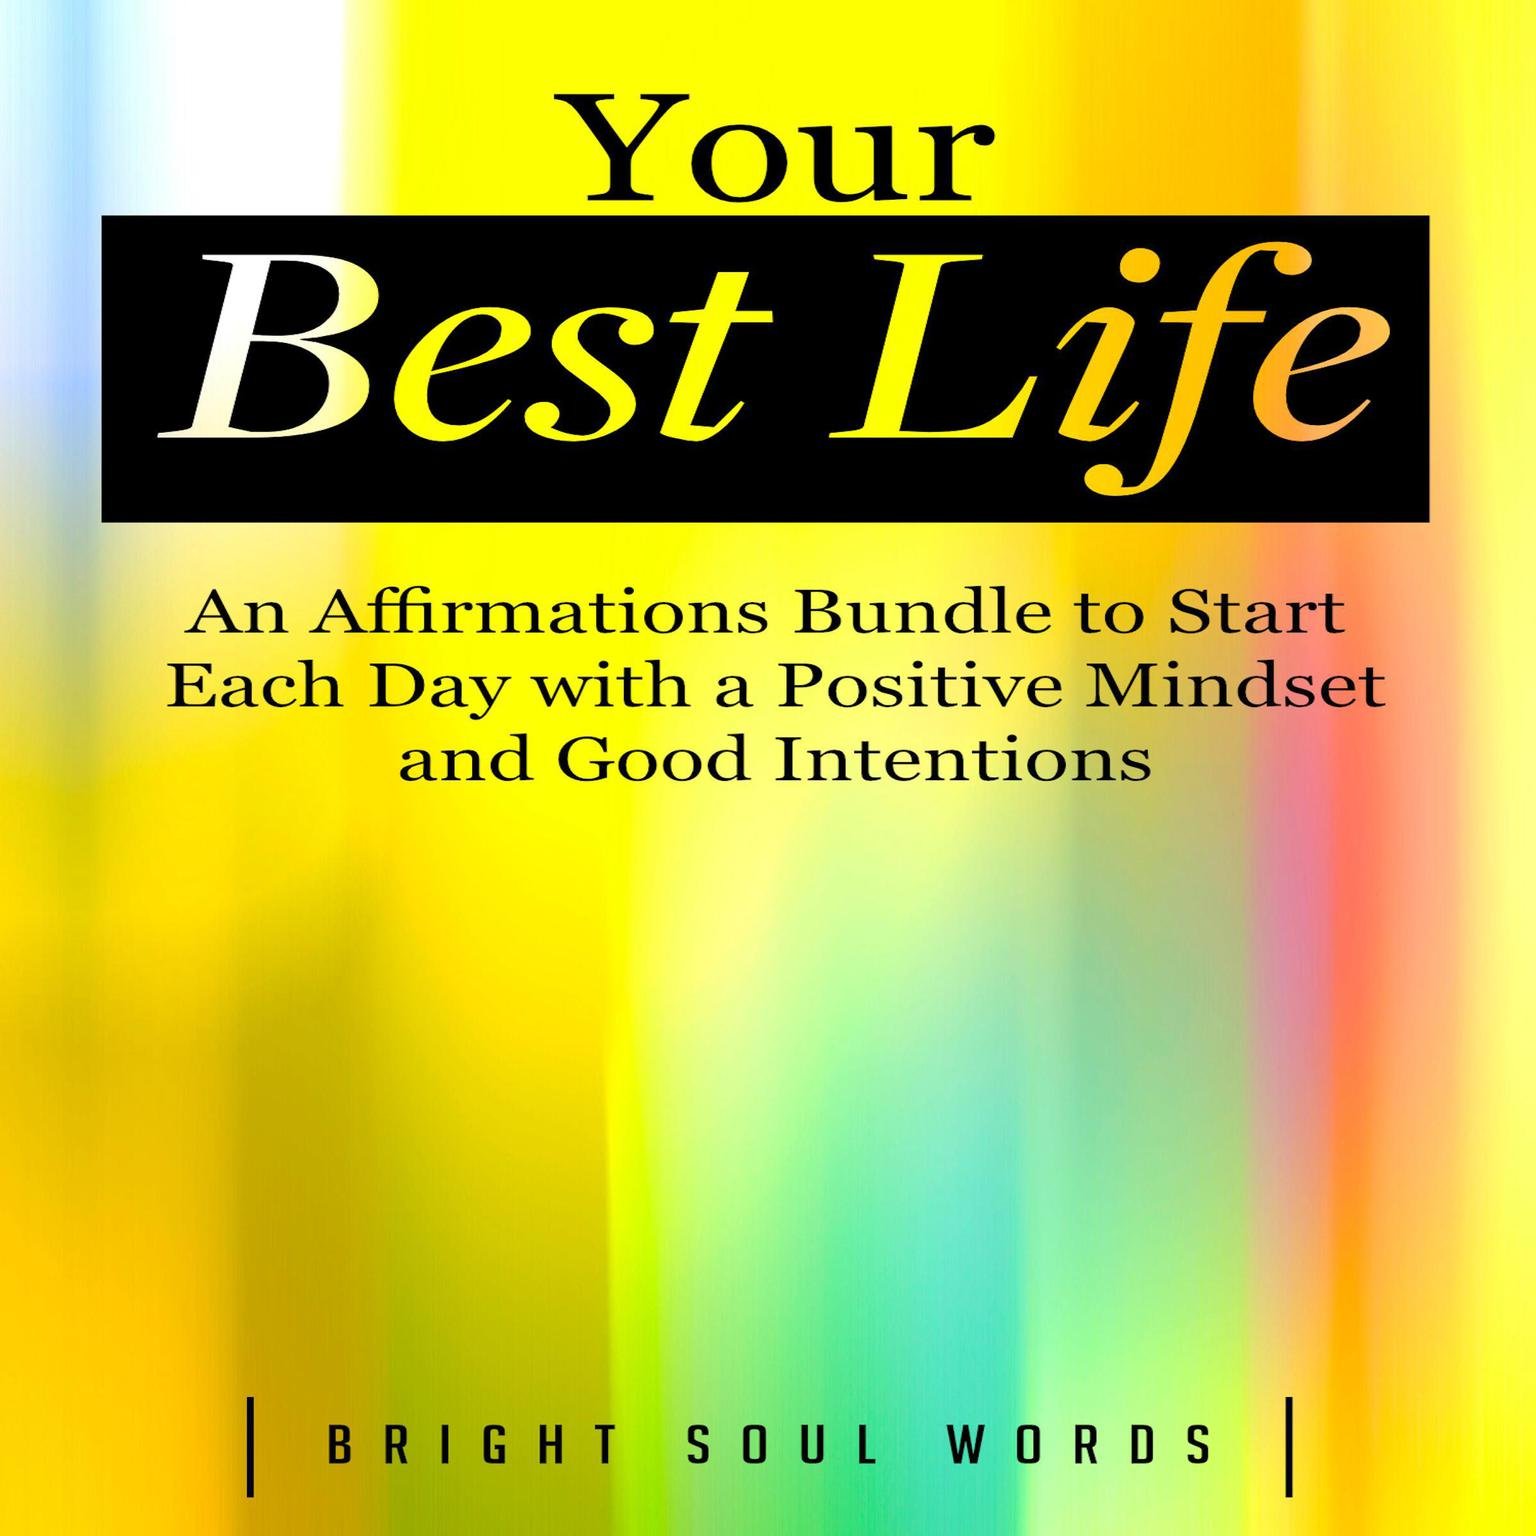 Your Best Life: An Affirmations Bundle to Start Each Day with a Positive Mindset and Good Intentions Audiobook, by Bright Soul Words